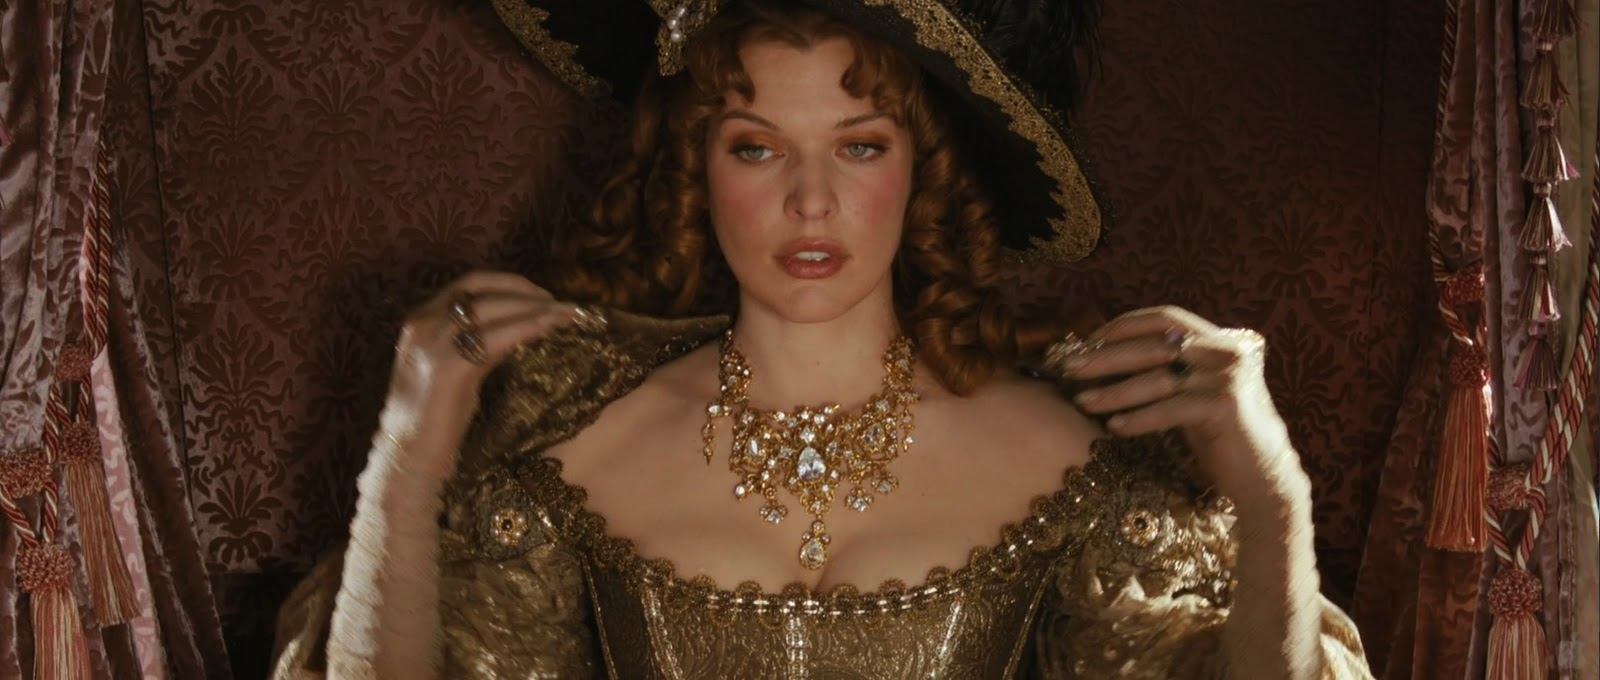 the three musketeers 2011 milady de winter